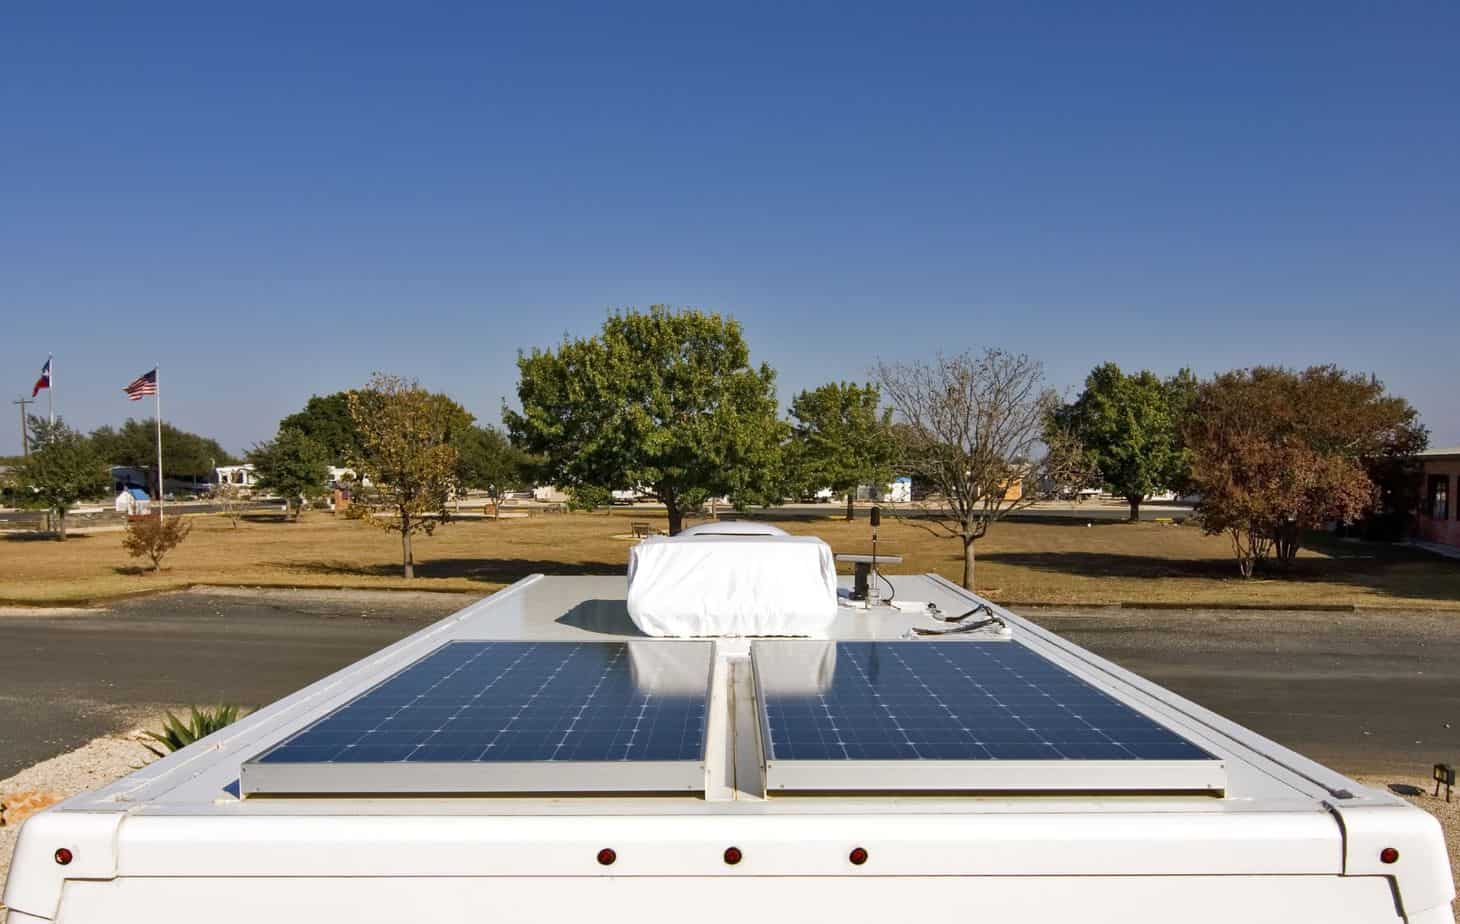 Solar Panels Or Generators For Campers And Rvswhats Best Camper Tips When Adding Circuit Breaker Diy Your Home Cost Of